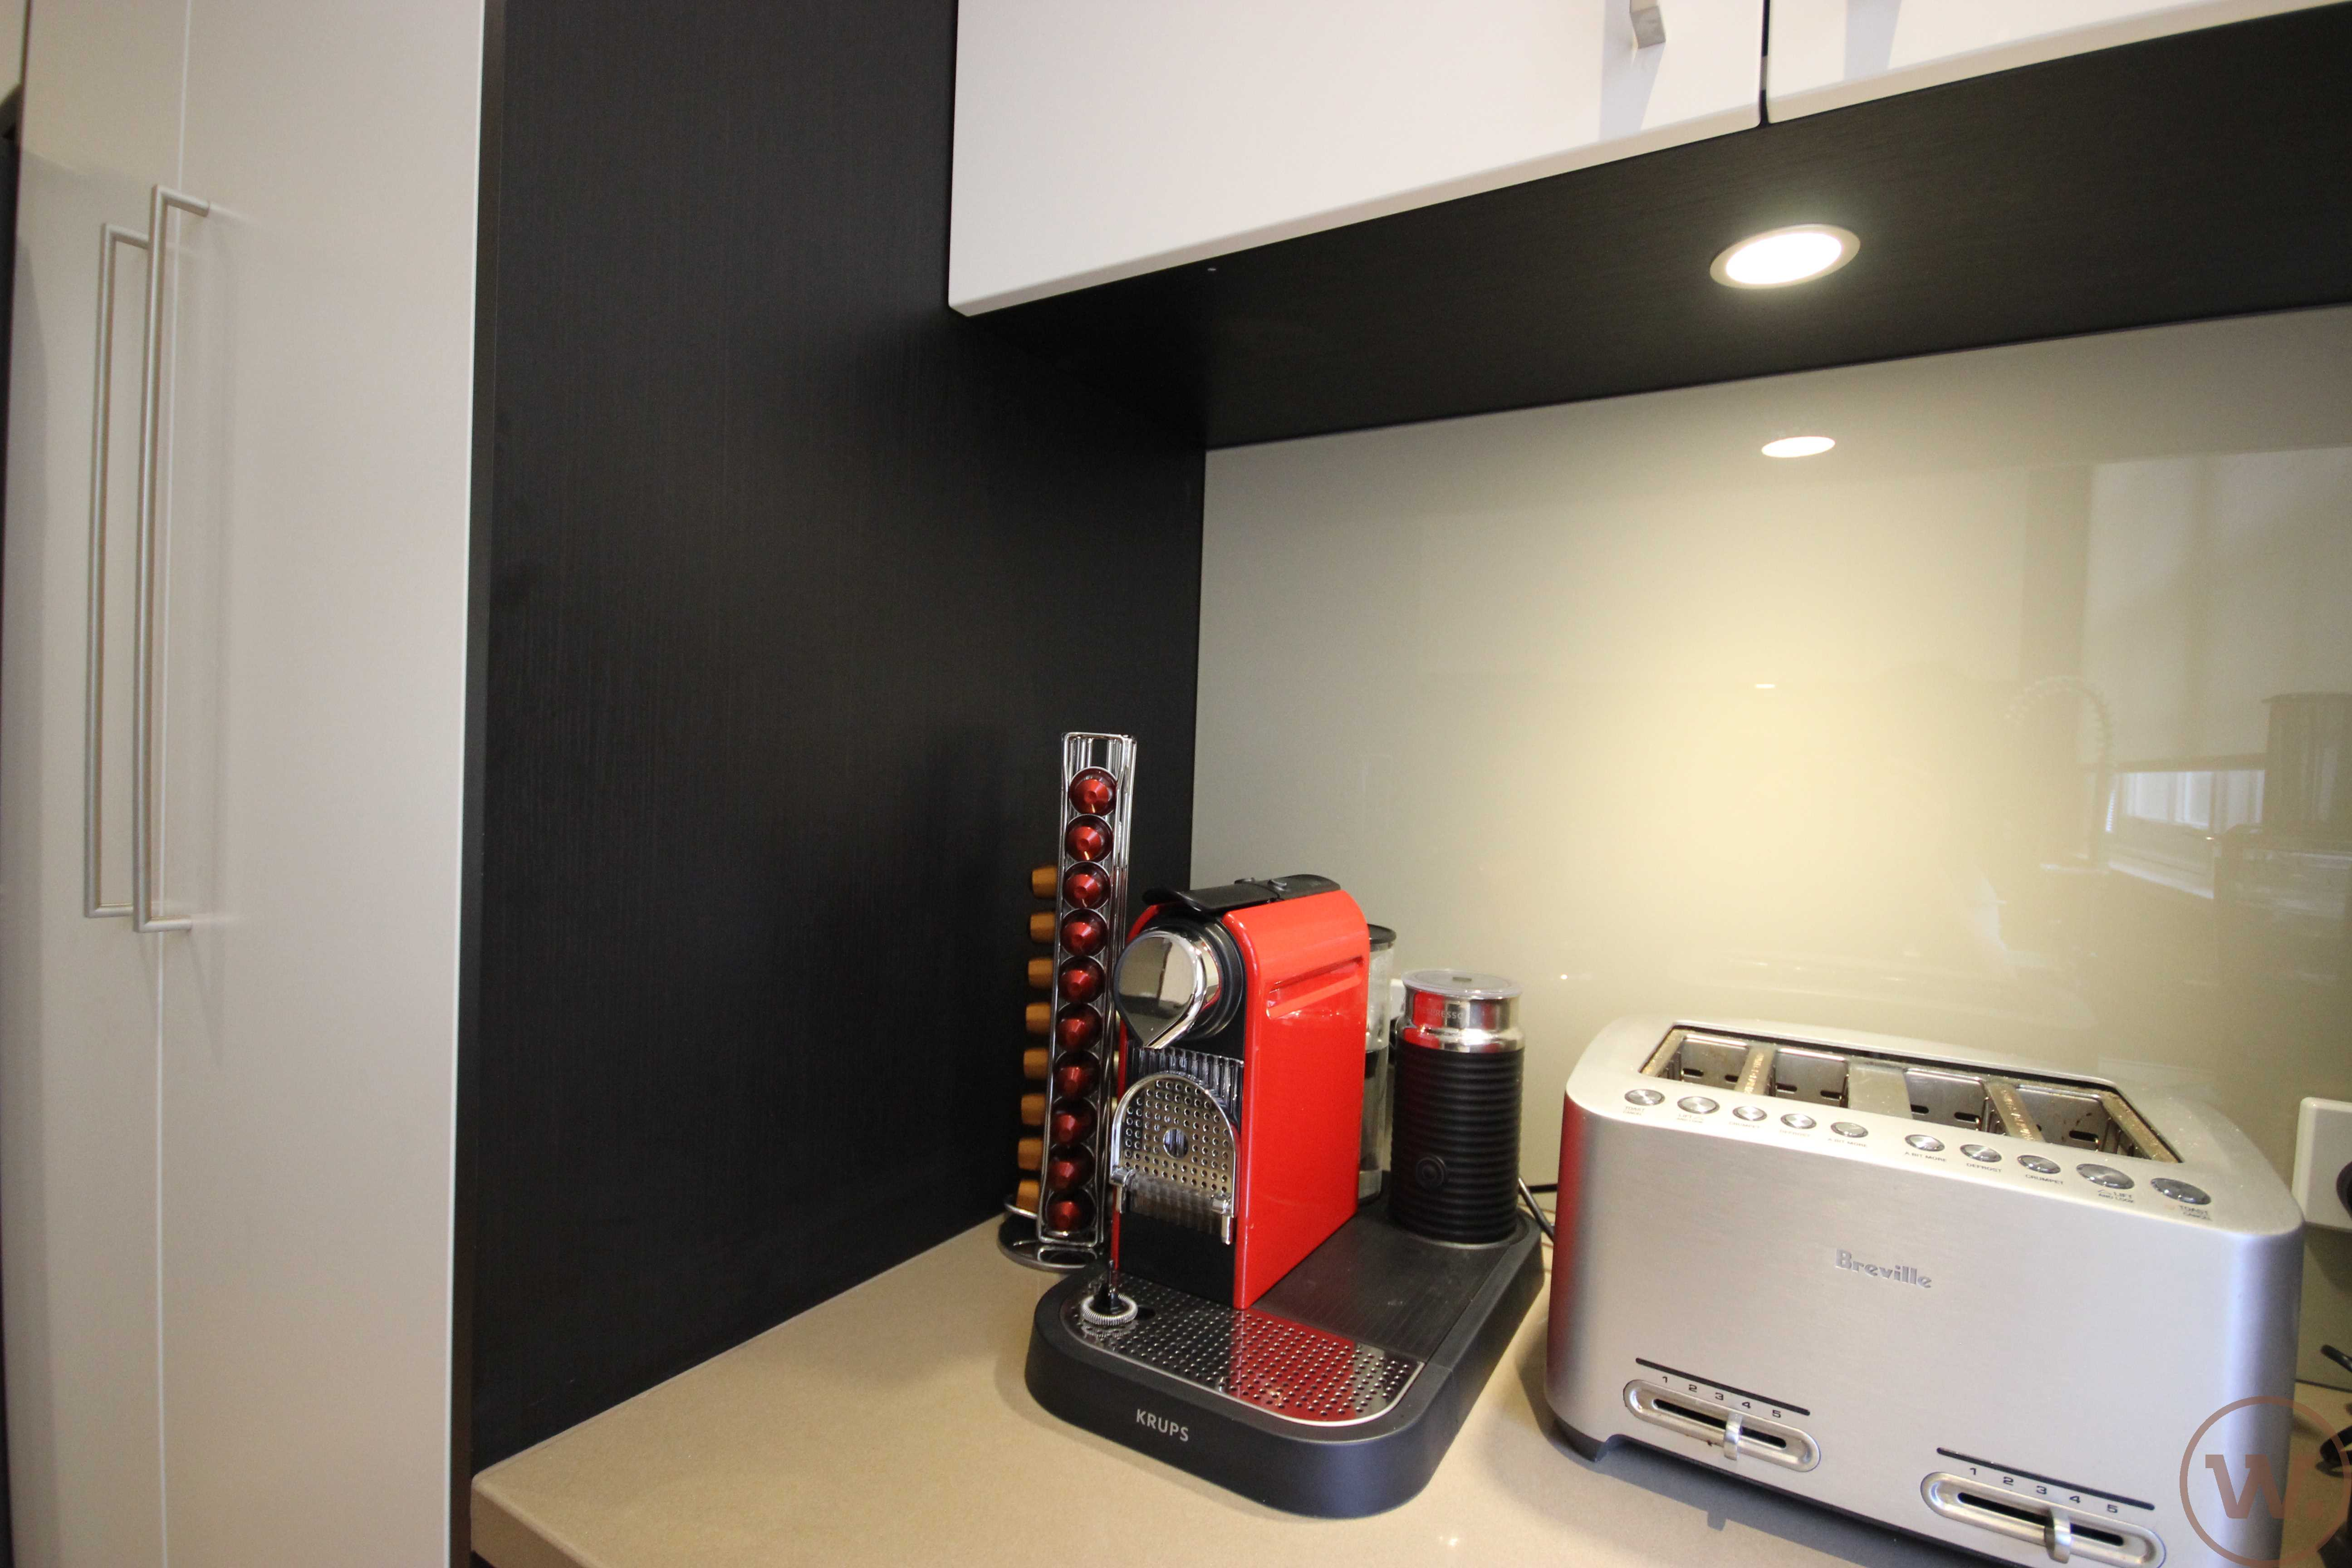 Thermo Formed Doors   Kitchen Renovations Melbourne   Kitchen ... on kitchen cabinets plymouth, kitchen cabinets nairobi, kitchen cabinets boston, kitchen cabinets houston, kitchen cabinets seattle, kitchen cabinets miami, kitchen cabinets kuala lumpur, kitchen cabinets dubai, kitchen cabinets san diego, kitchen cabinets naples florida, kitchen cabinets bangkok, kitchen cabinets australia, kitchen cabinets portland, kitchen cabinets vancouver, kitchen cabinets dover, kitchen cabinets edmonton, kitchen cabinets ontario,